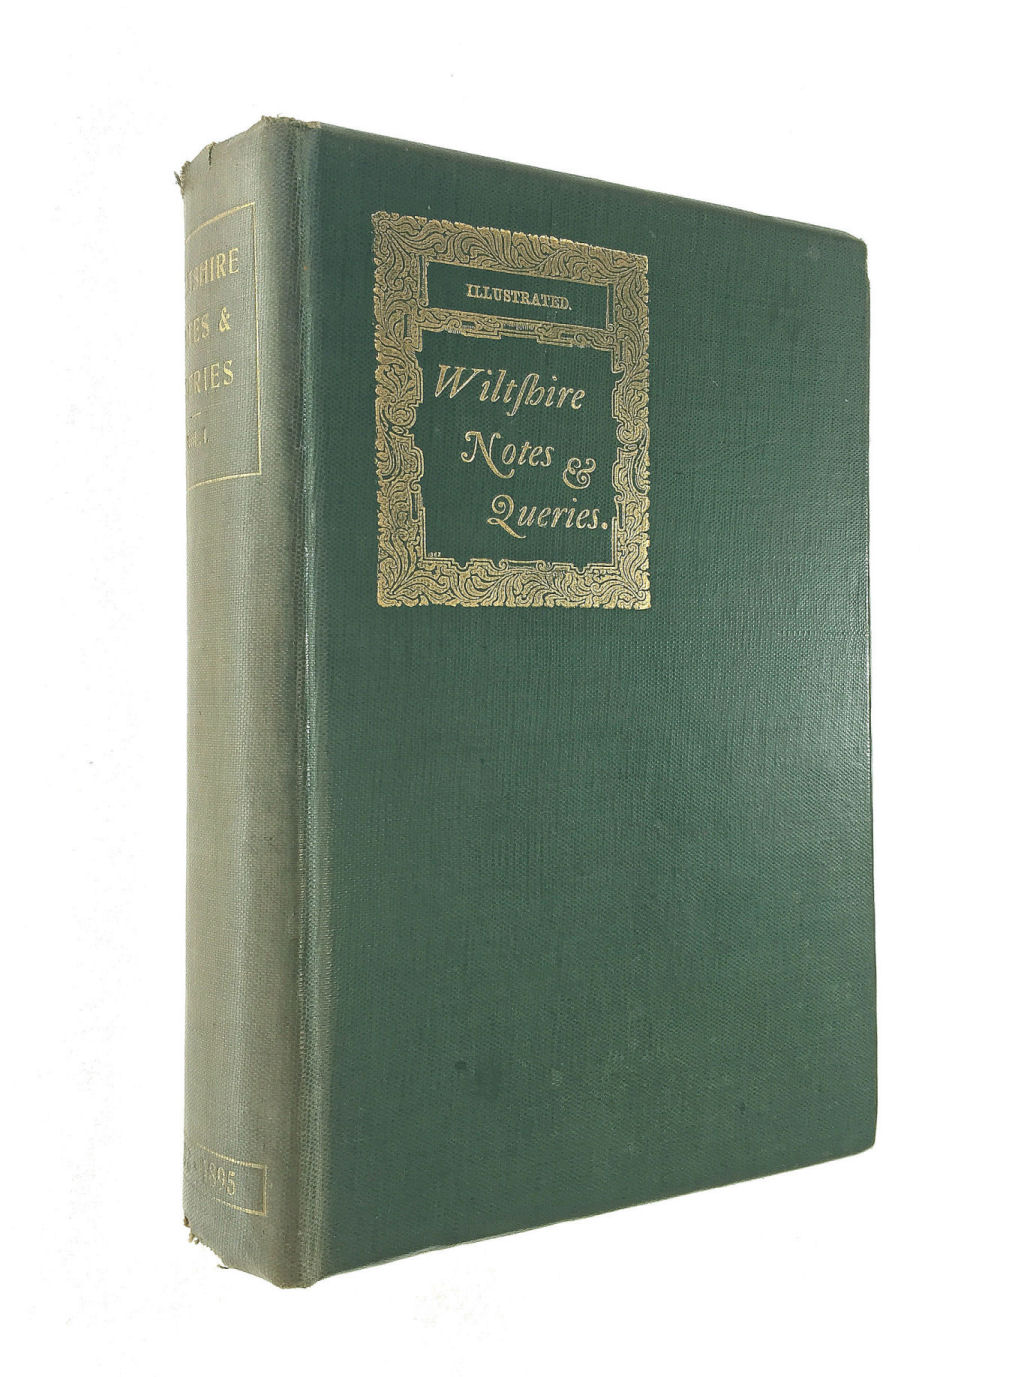 Image for Wiltshire Notes And Queries. Volume 1. 1893-1895. An Illustrated Quarterly Antiquarian And Genealogical Magazine.